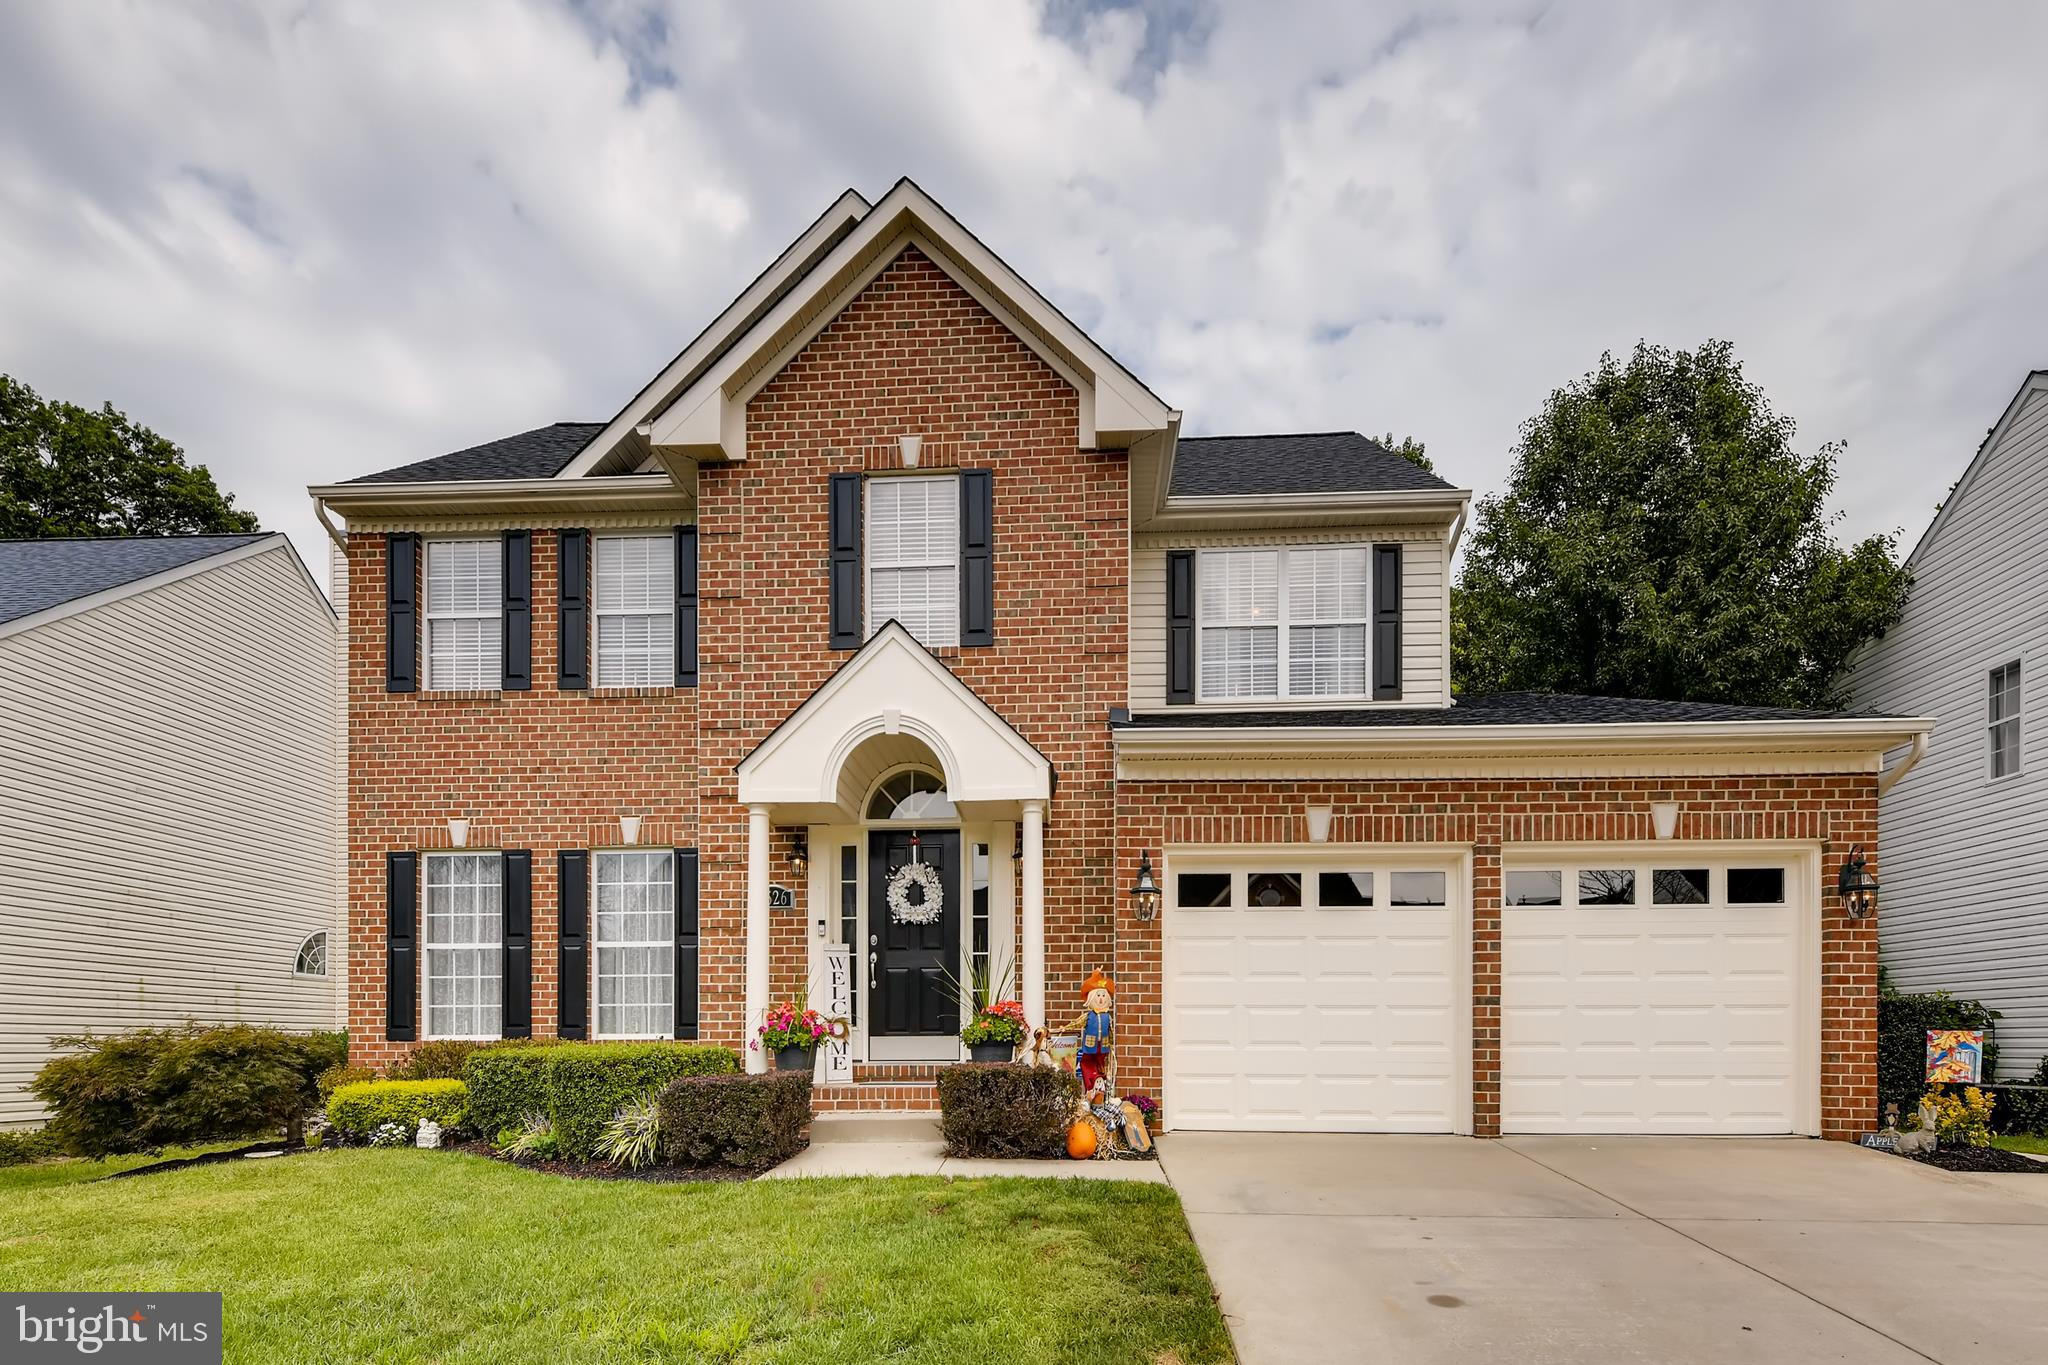 9526 GOOD SPRING DRIVE, PERRY HALL, MD 21128